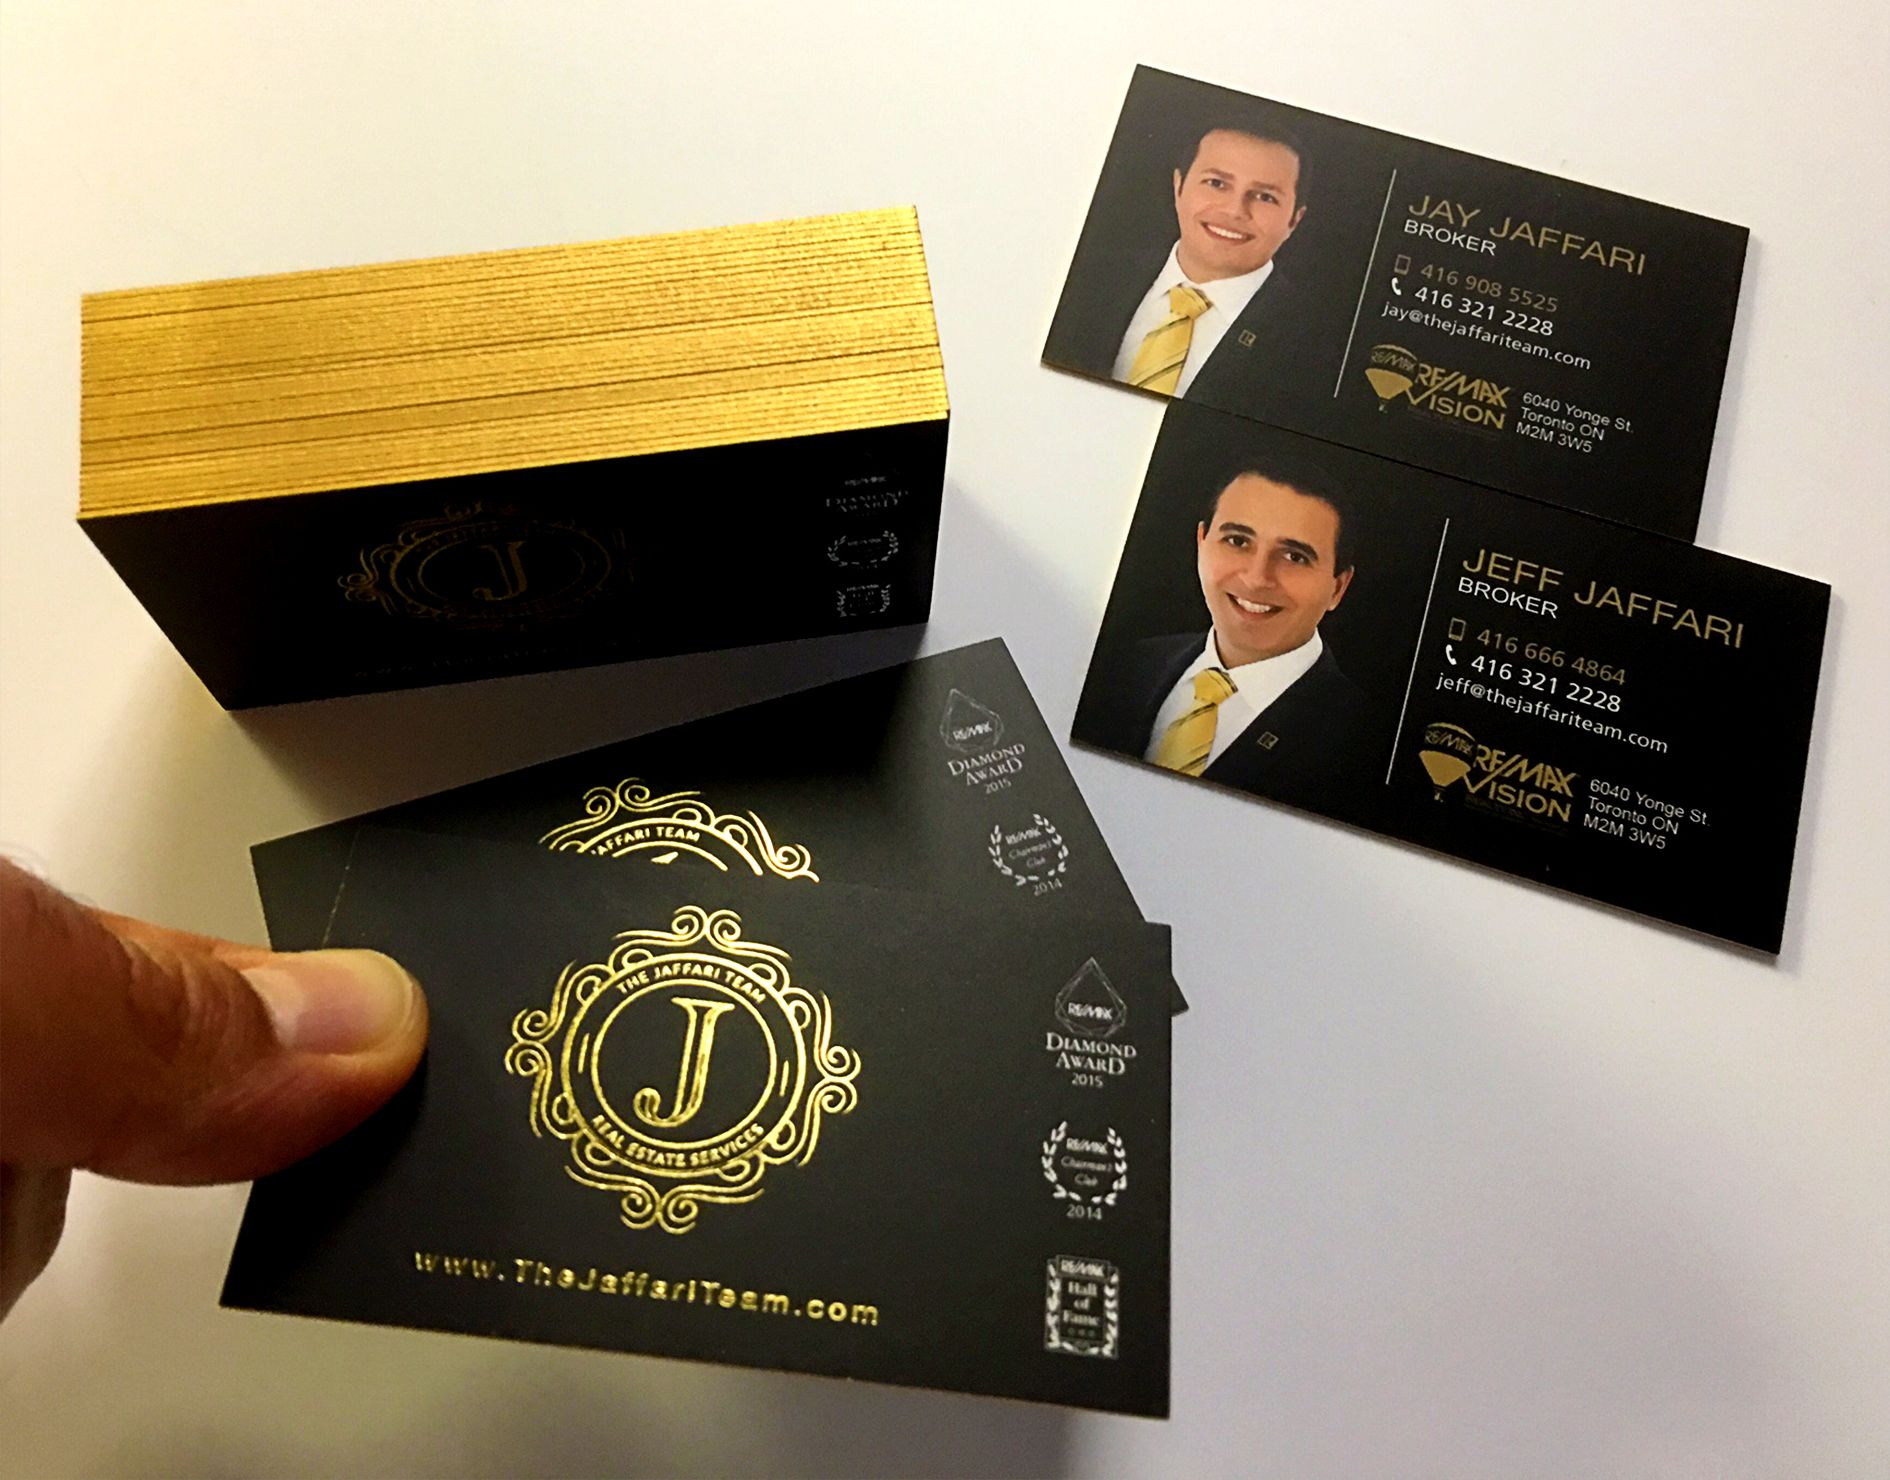 The jaffari team logo and business card design luxury gold foil real estate the jaffari team logo and business card design luxury gold foil business cards with gold reheart Images